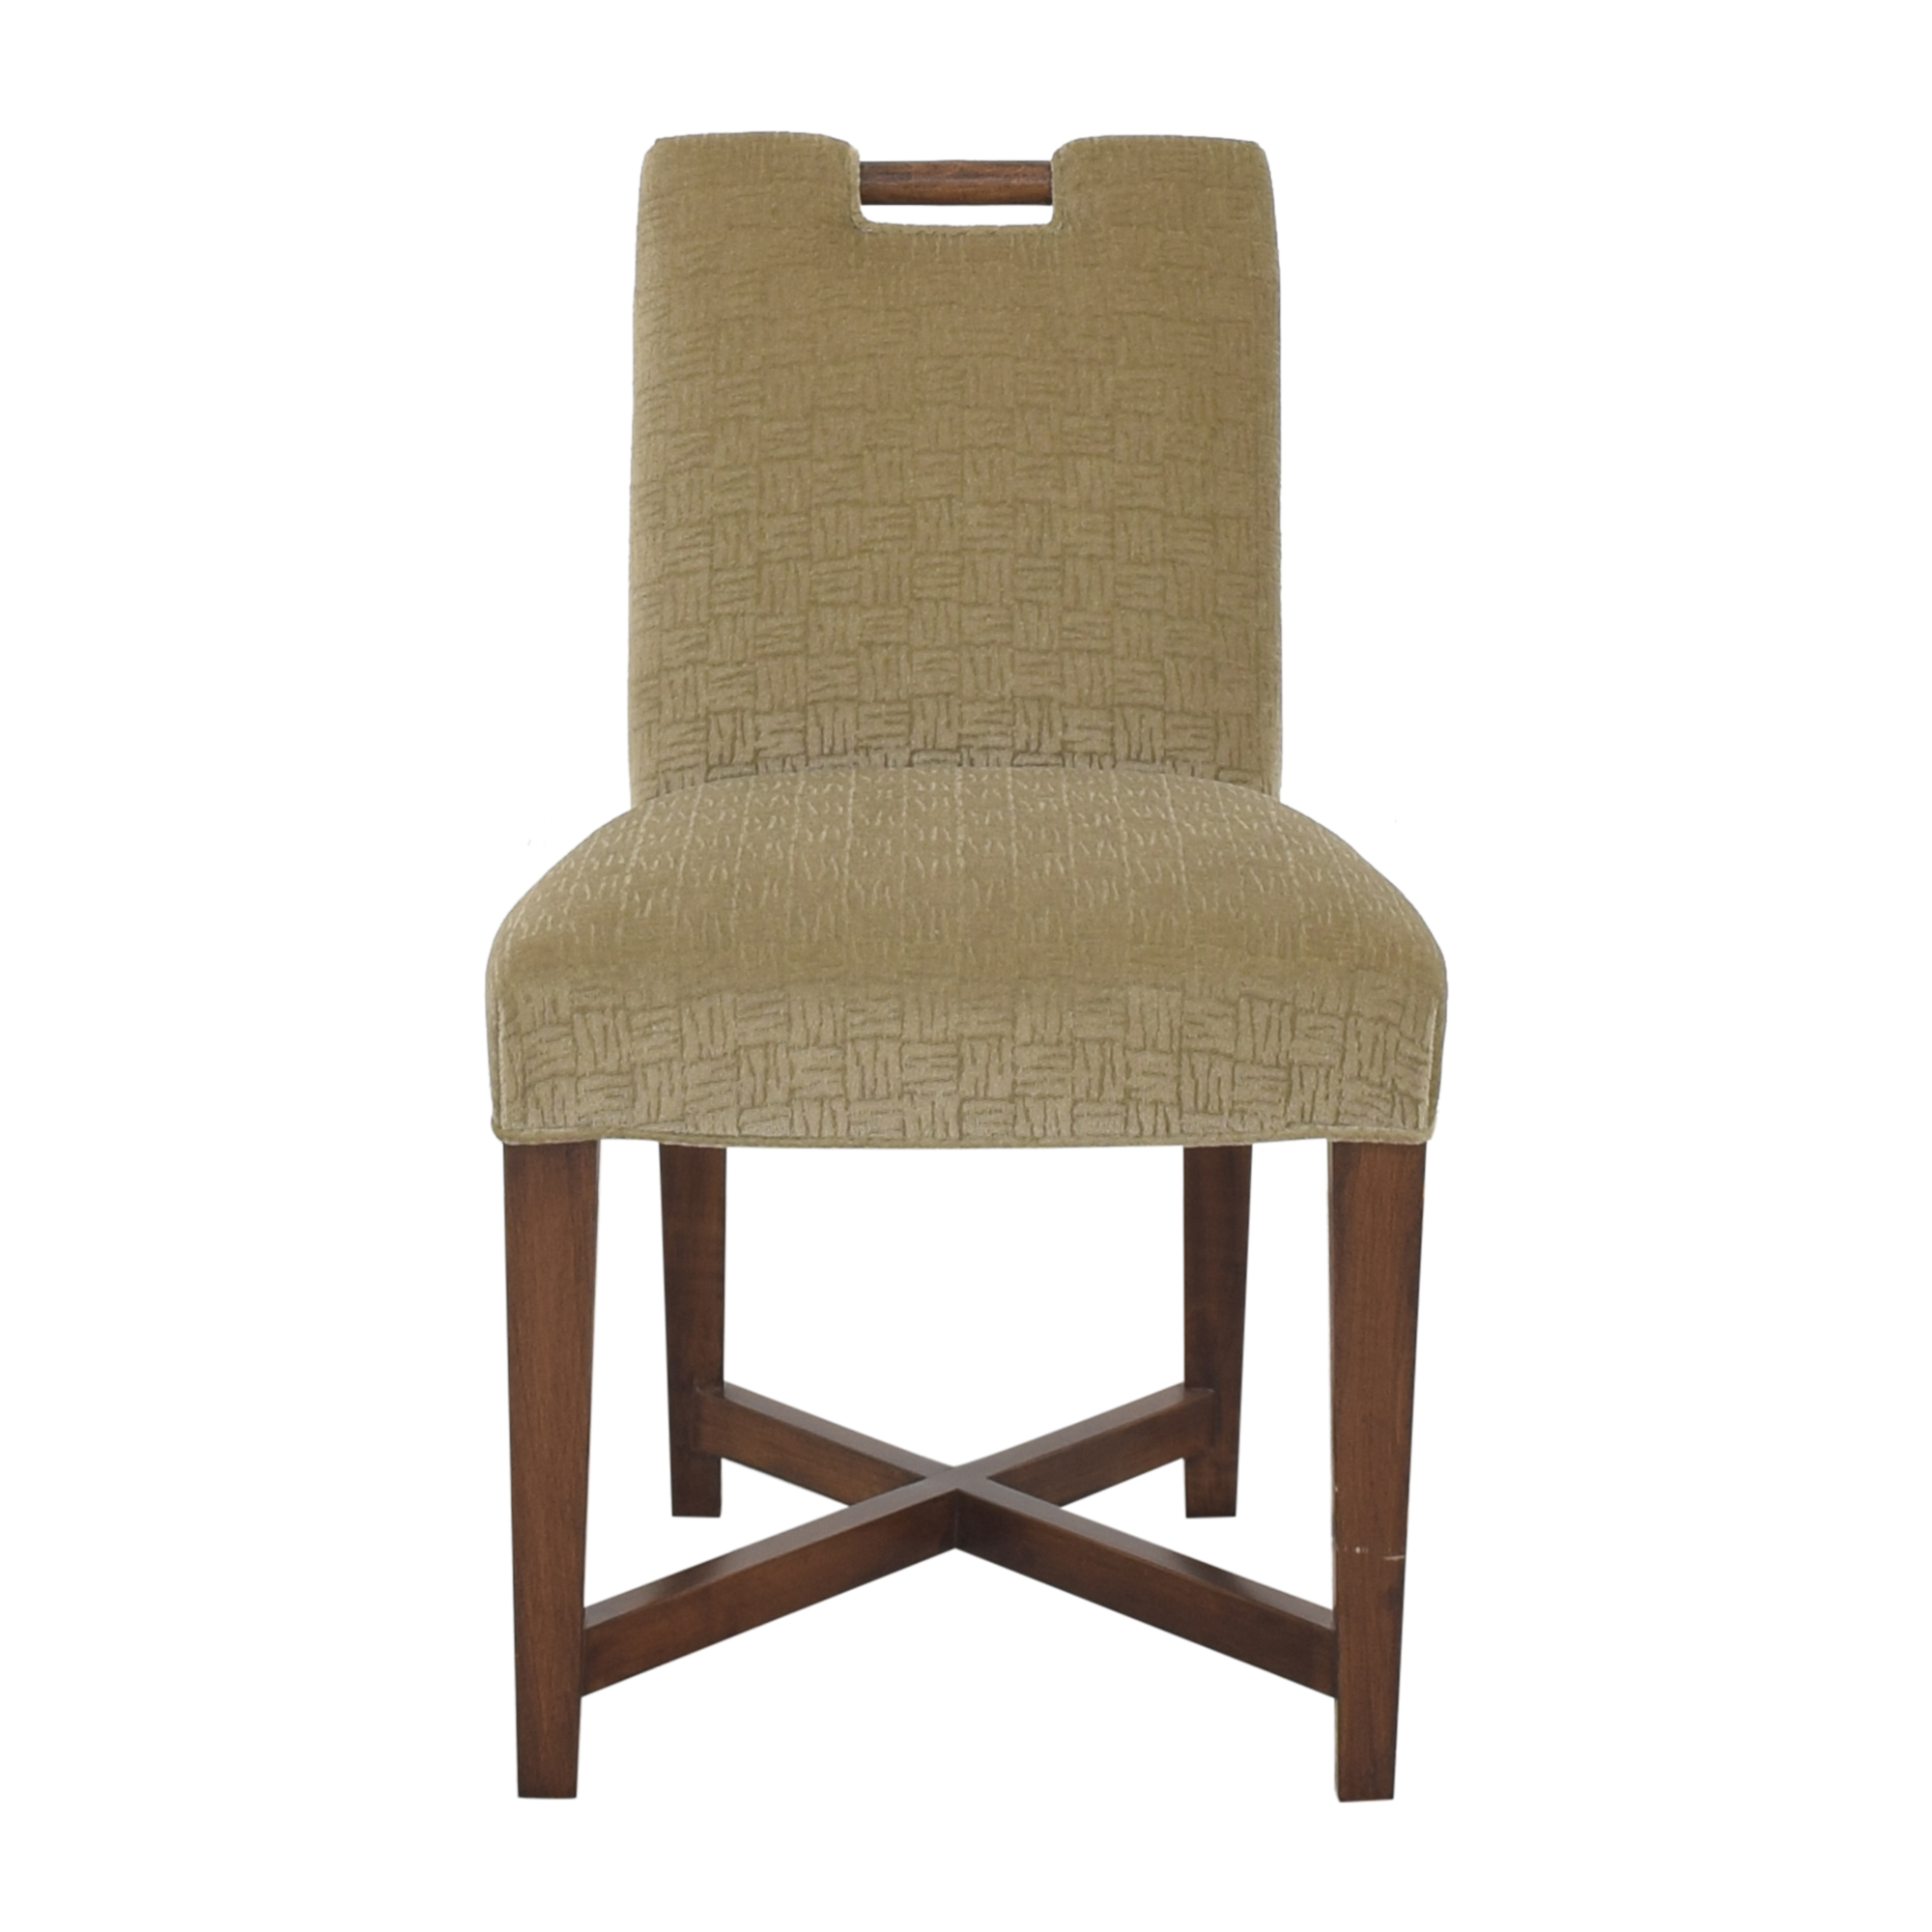 Donghia Donghia Custom Upholstered Chair dark brown and green